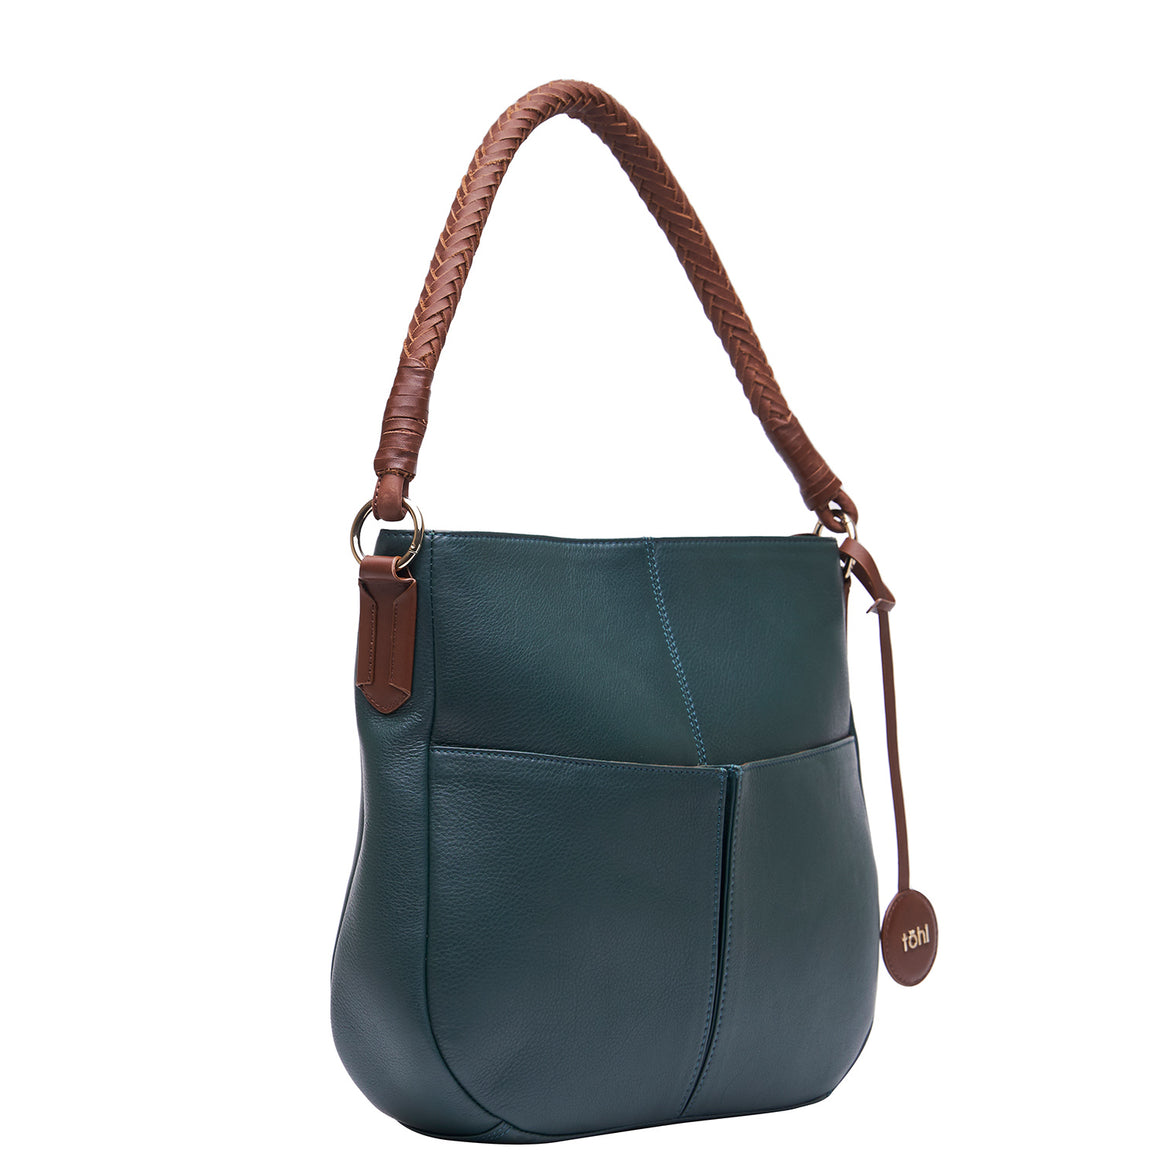 SB  0025 - TOHL SUTTON WOMEN'S SHOULDER BAG - FOREST GREEN